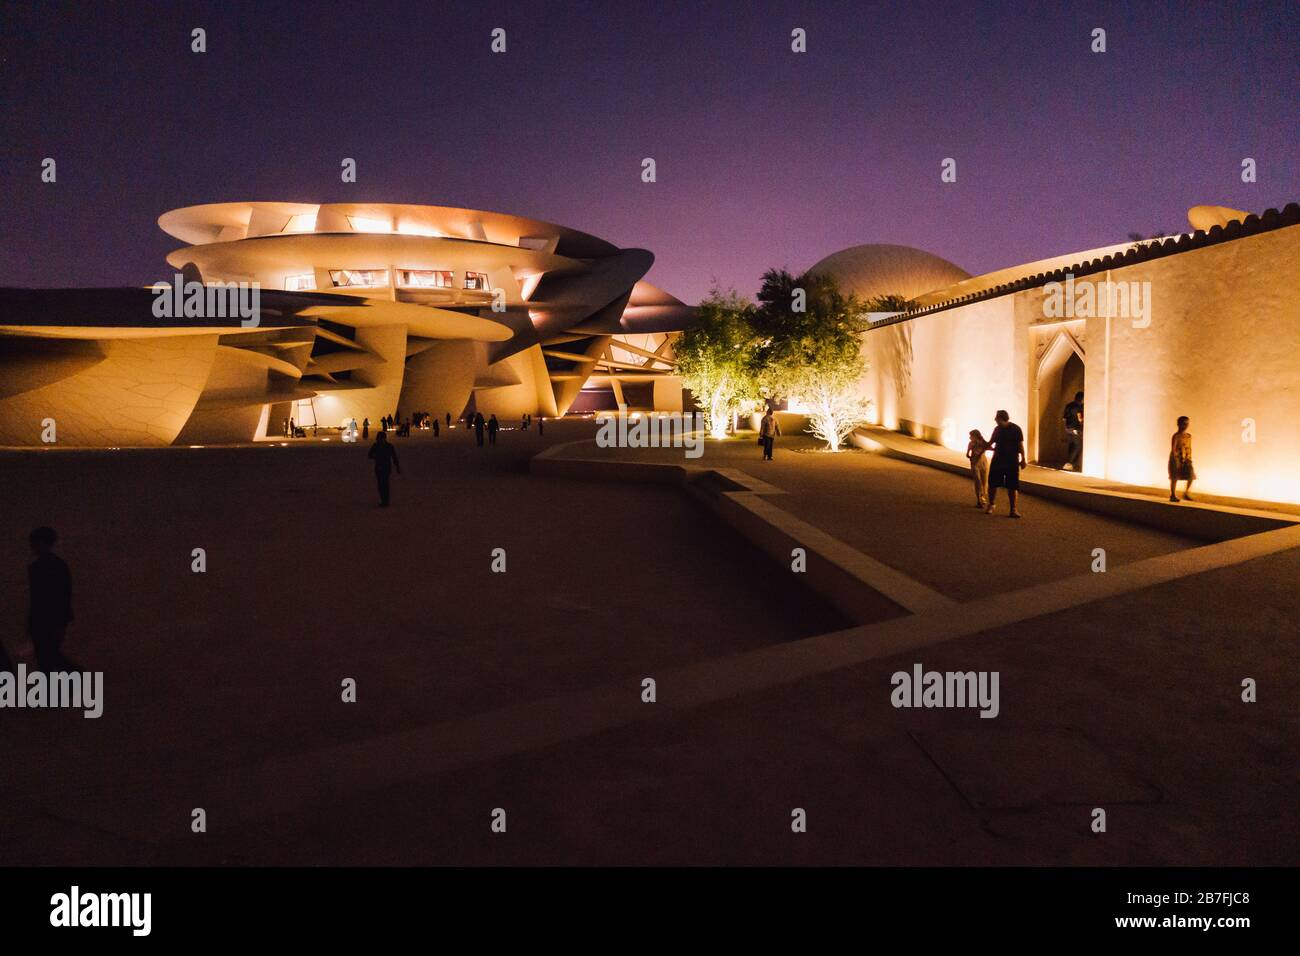 Night time shot of the National Museum of Qatar, with its striking disc-based design, in Doha, Qatar Stock Photo